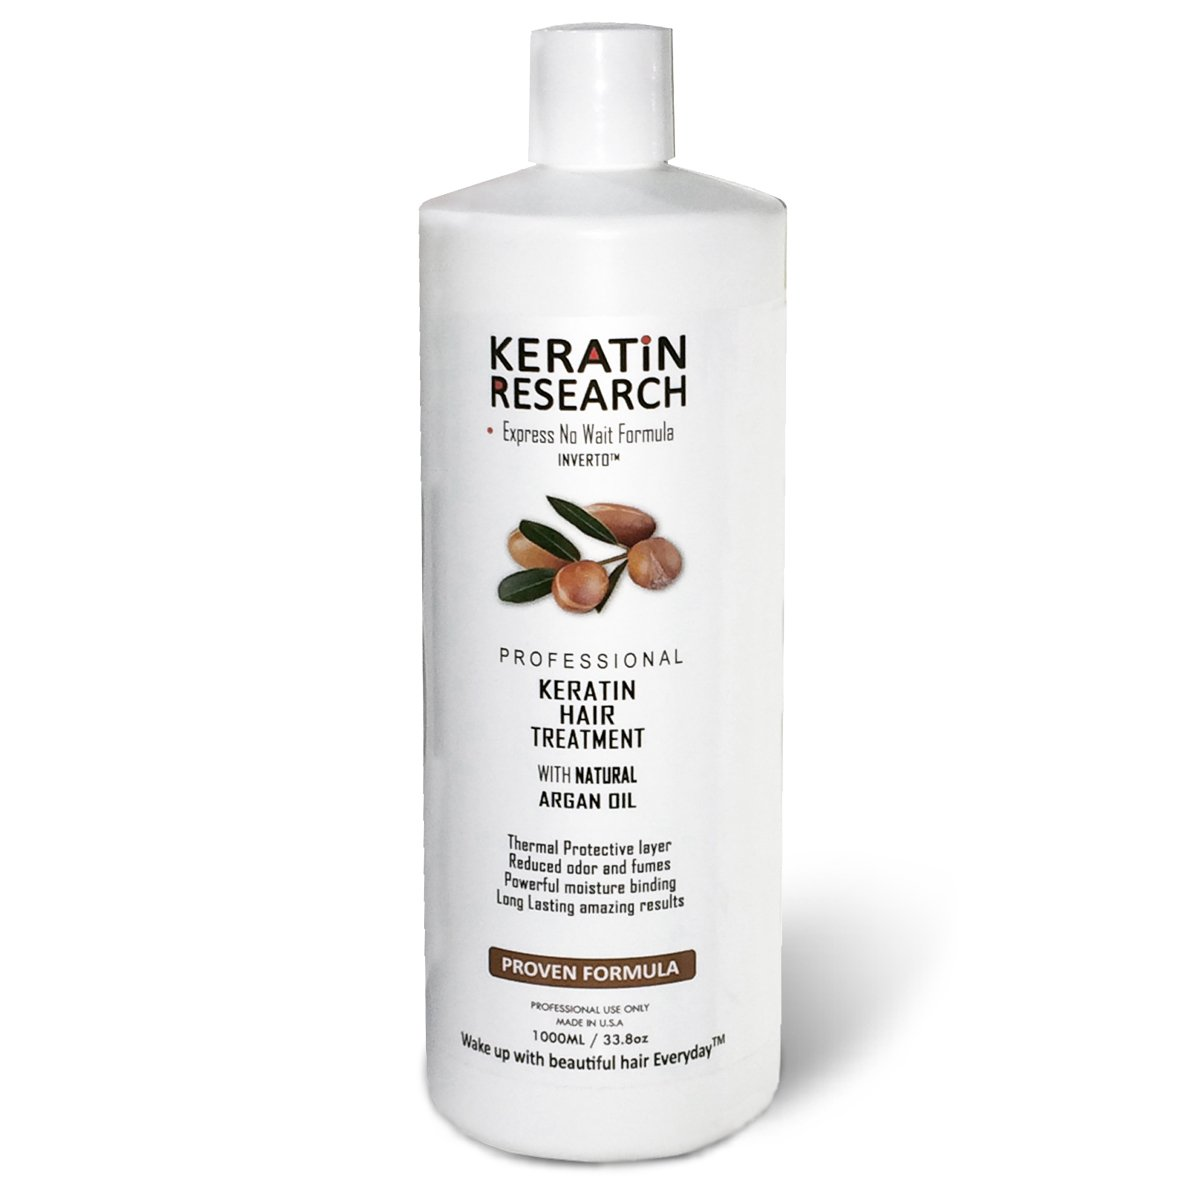 Brazilian Keratin Hair Treatment Professional X Large 1000ml Bottle Proven Amazing Results by Keratin Research (Image #2)